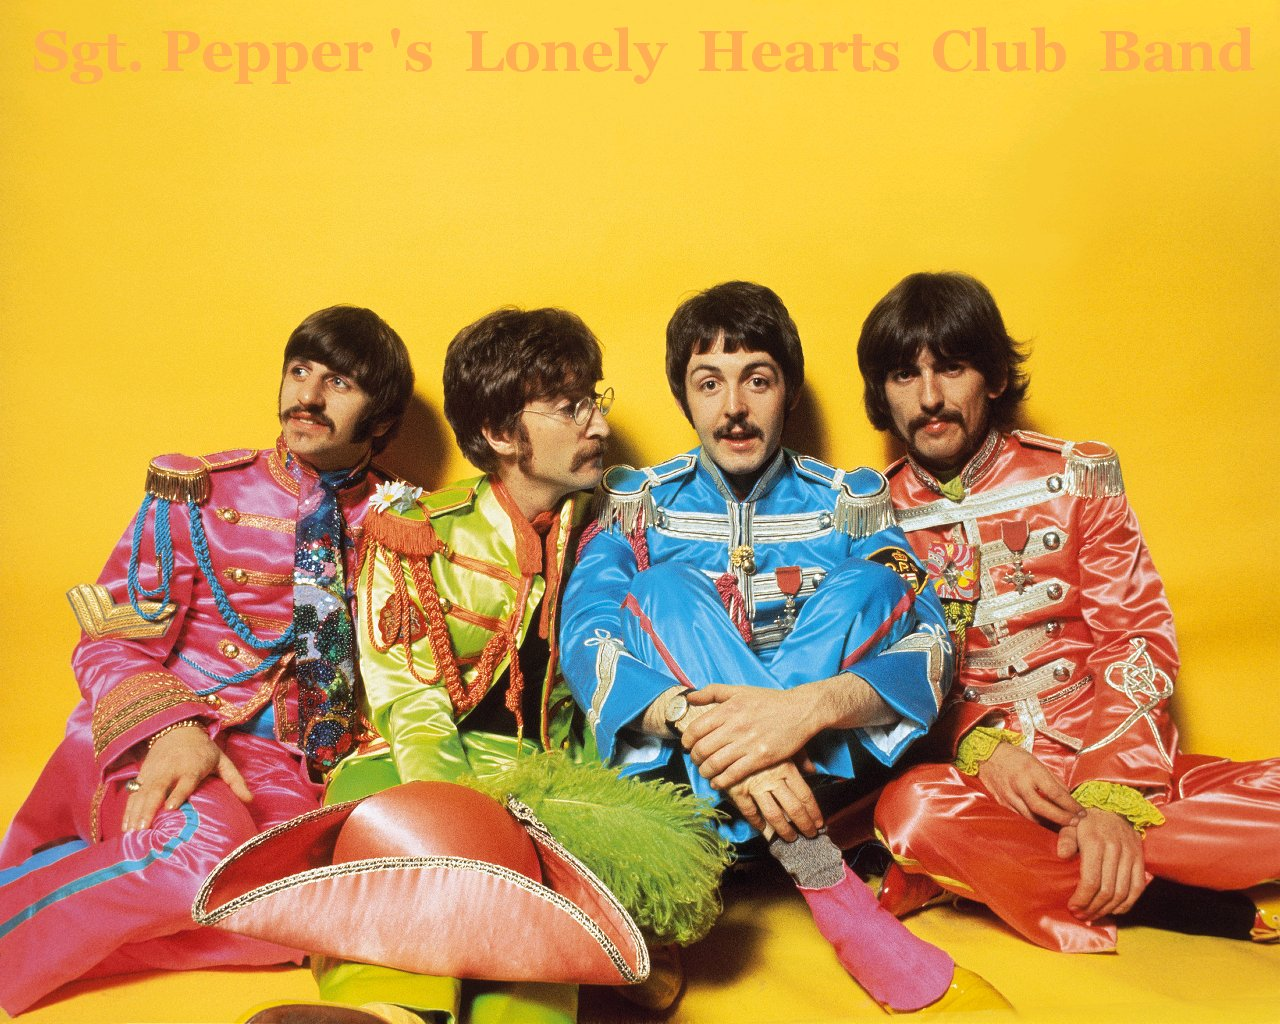 The Beatles - Page 2 383793955